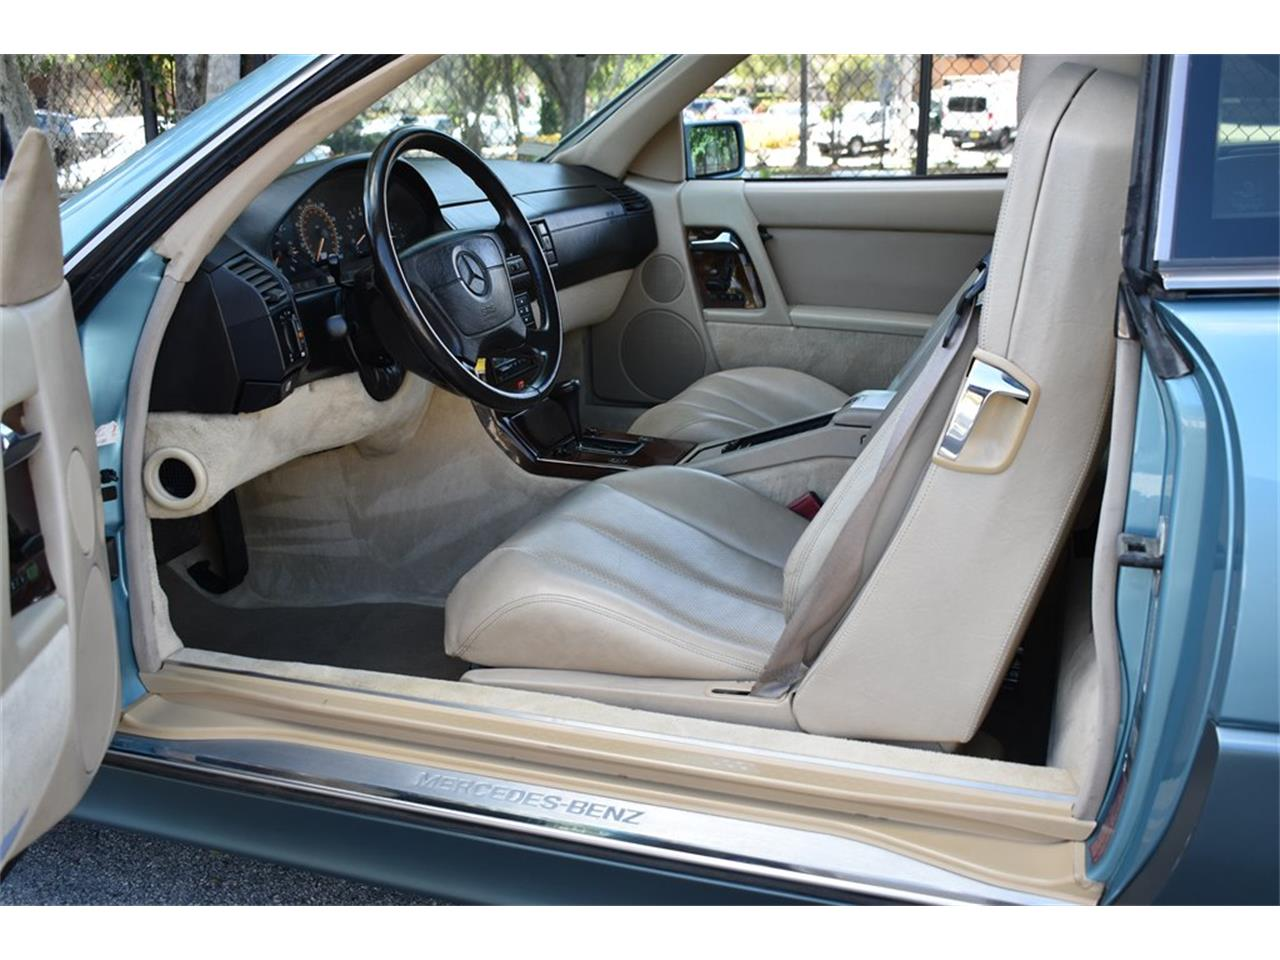 1992 Mercedes-Benz S-Class (CC-1332243) for sale in Lakeland, Florida